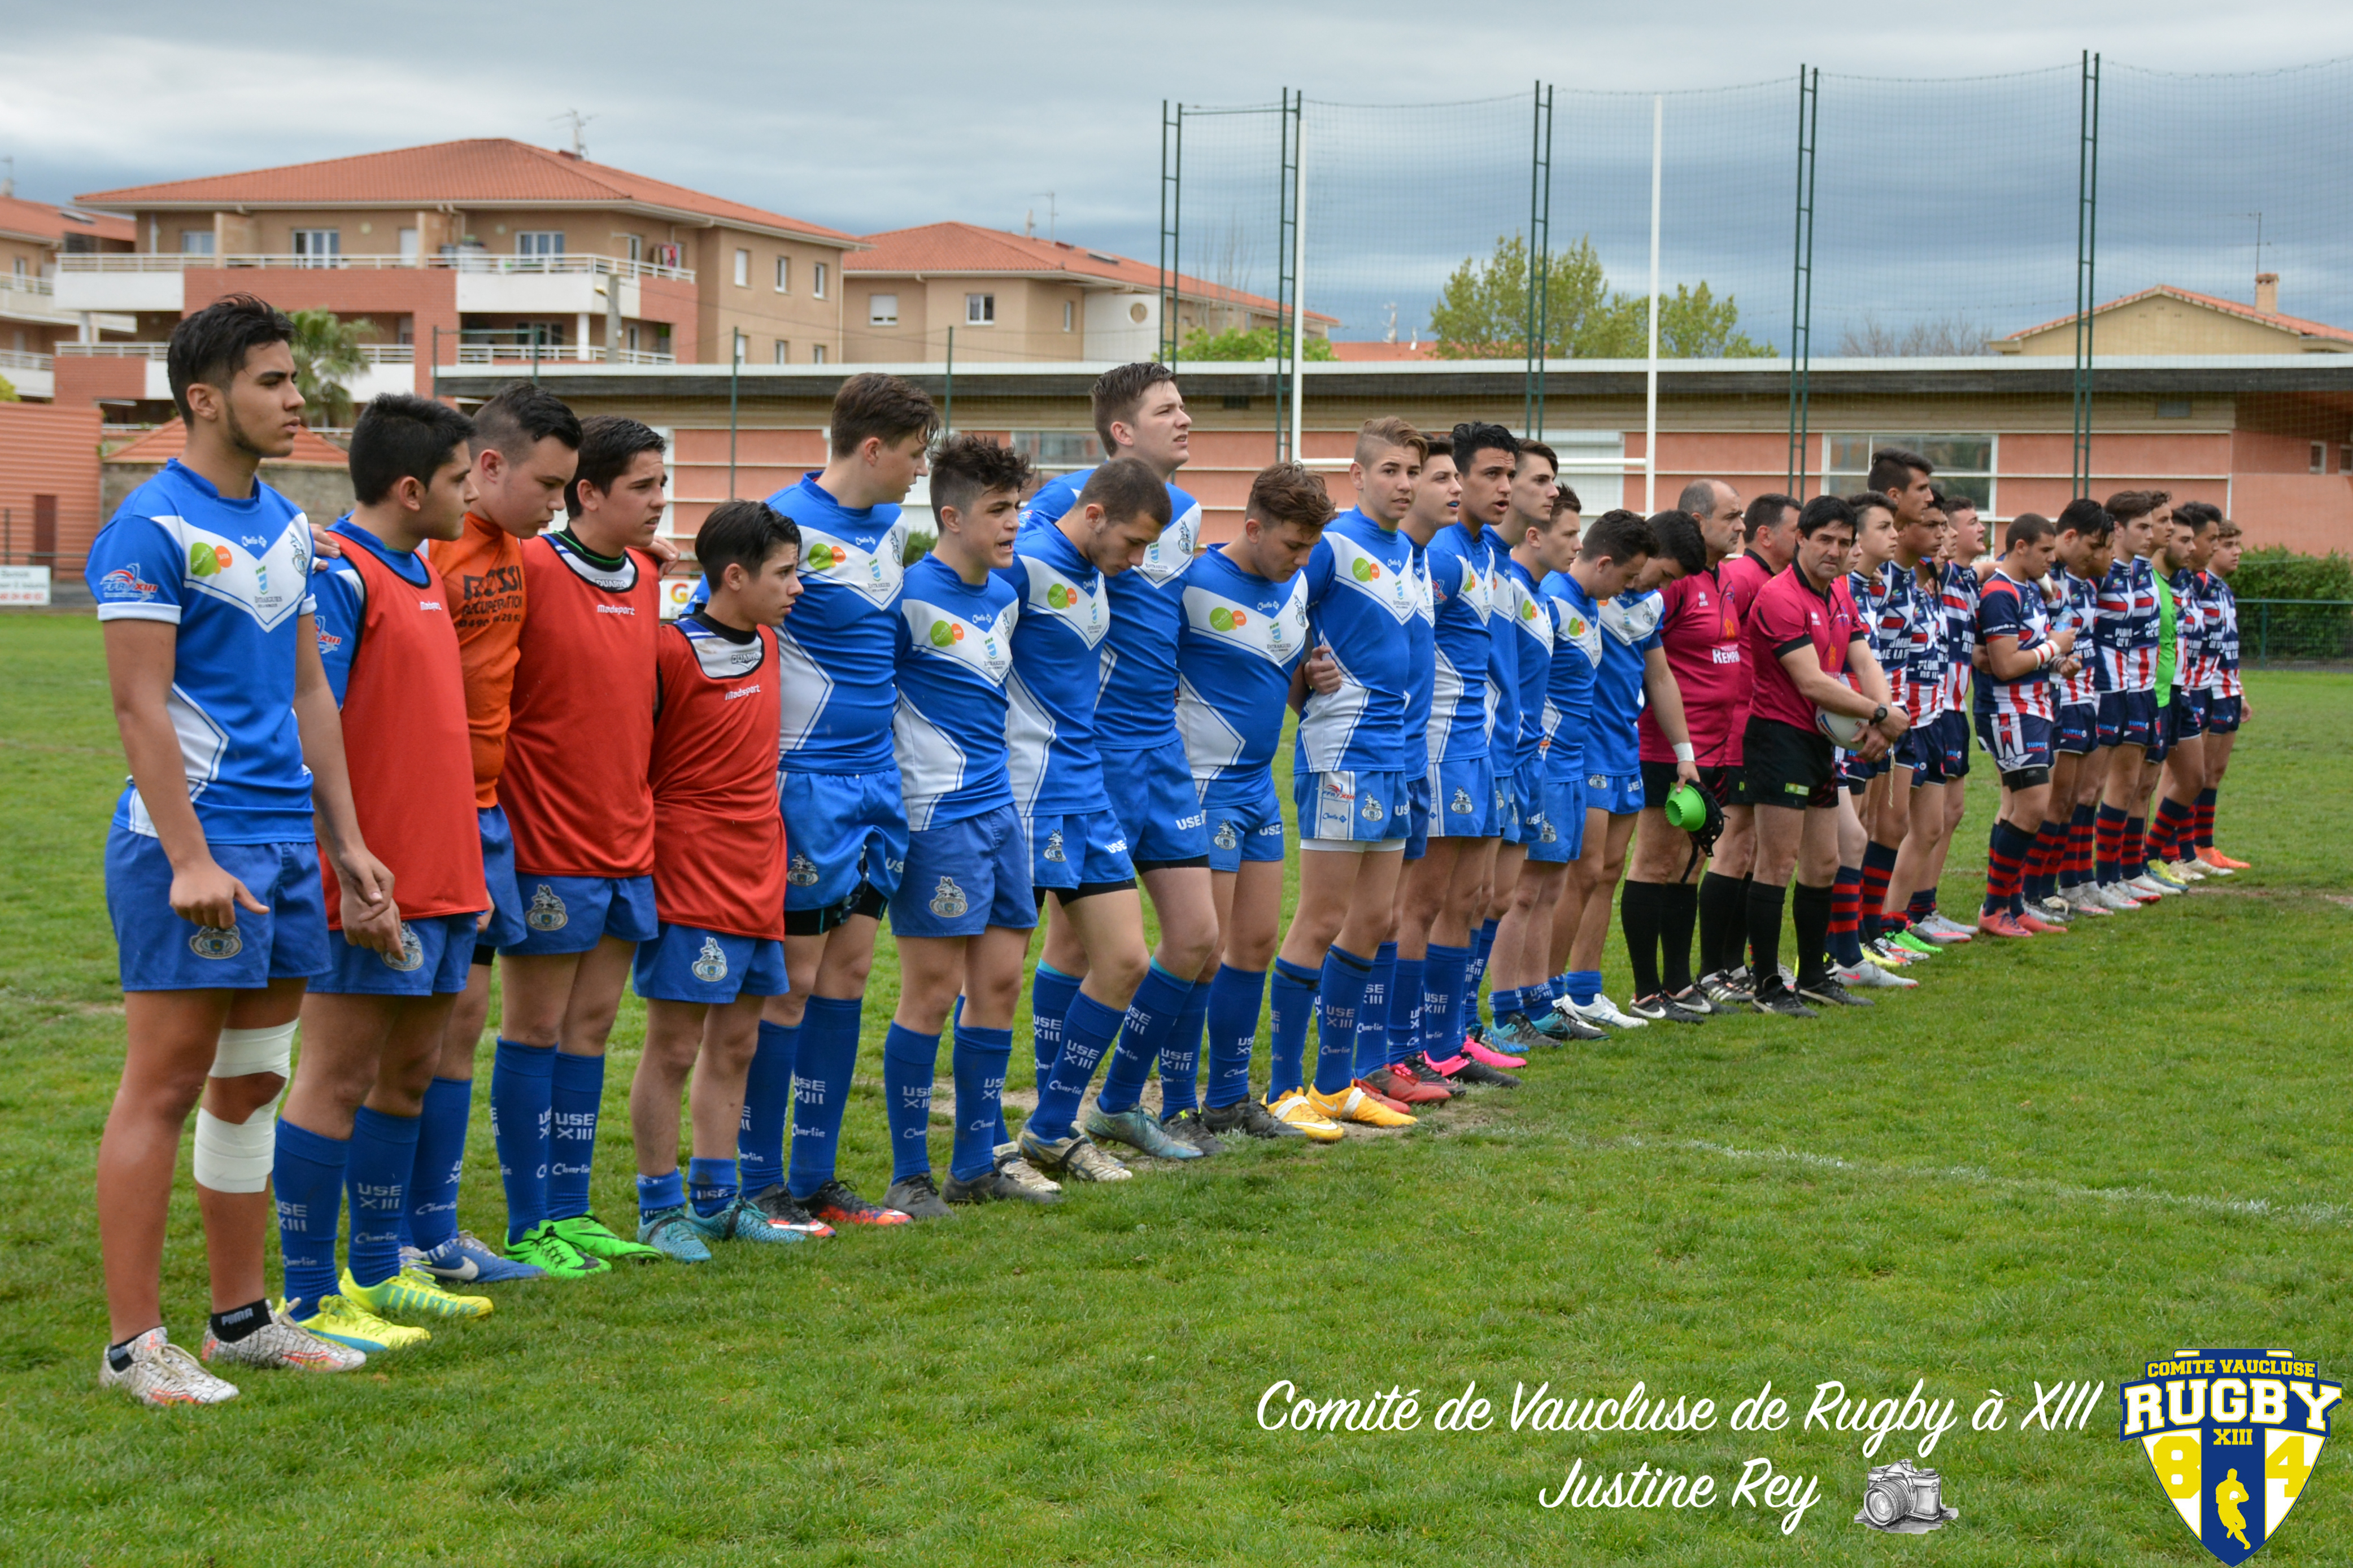 rugby xiii vaucluse